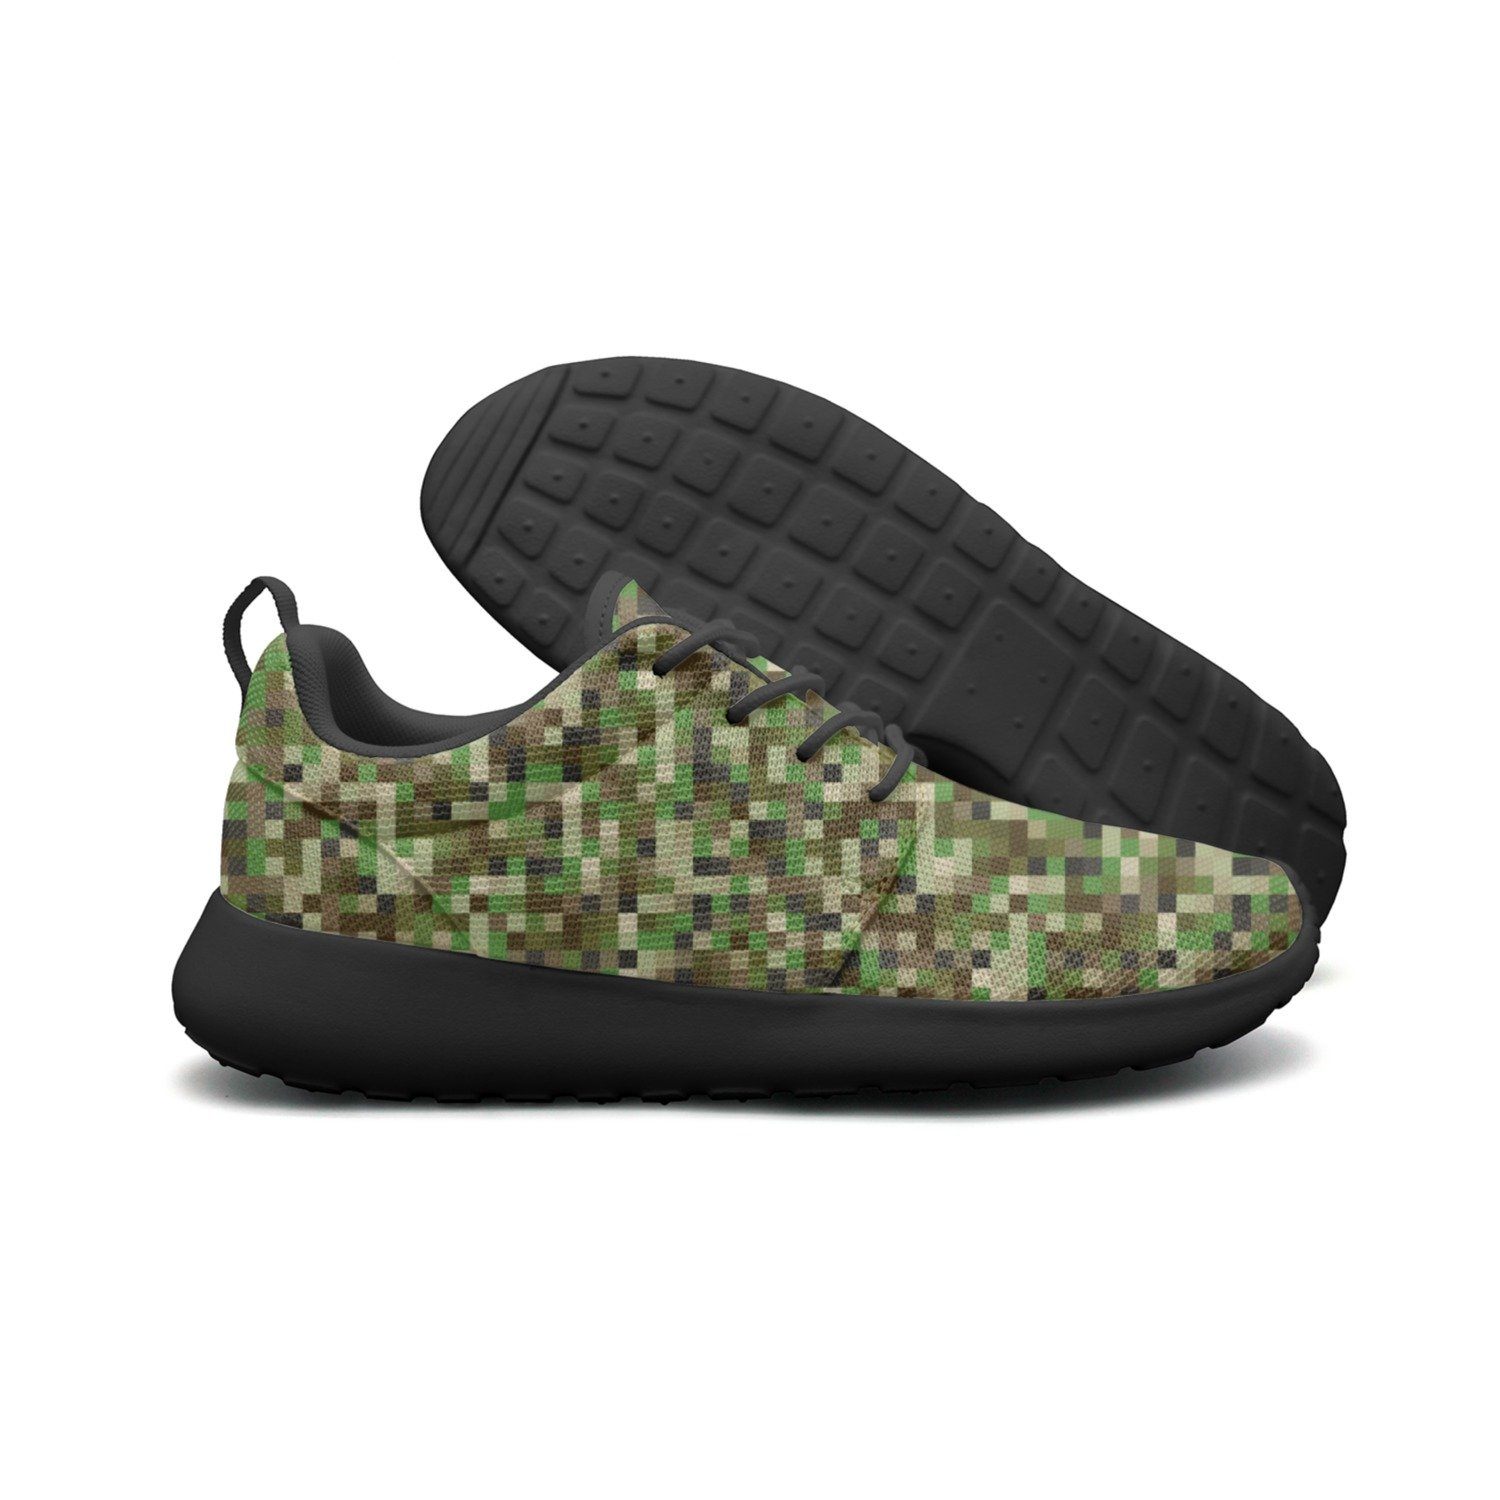 AKDJDS Camouflage Image Running Shoe Sneakers Mens Shoes